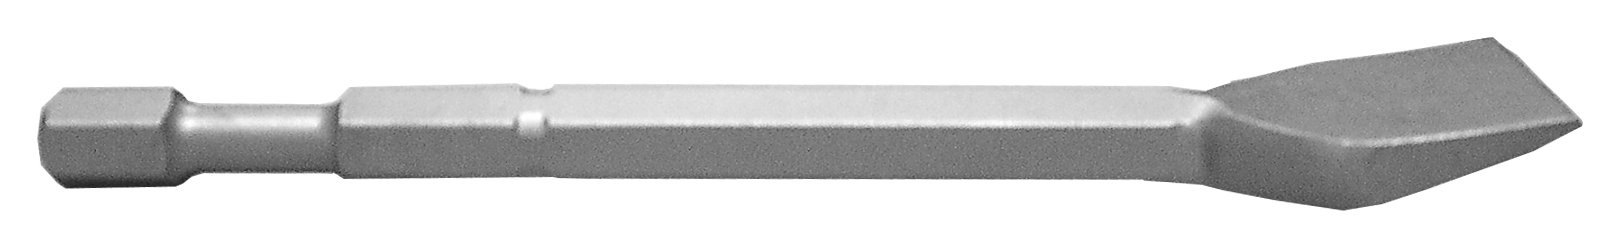 Champion Chisel, 3/4-Inch Hex Demo Shank, 12-Inch Long, 3-Inch Wide Bent Chisel, Single Bevel